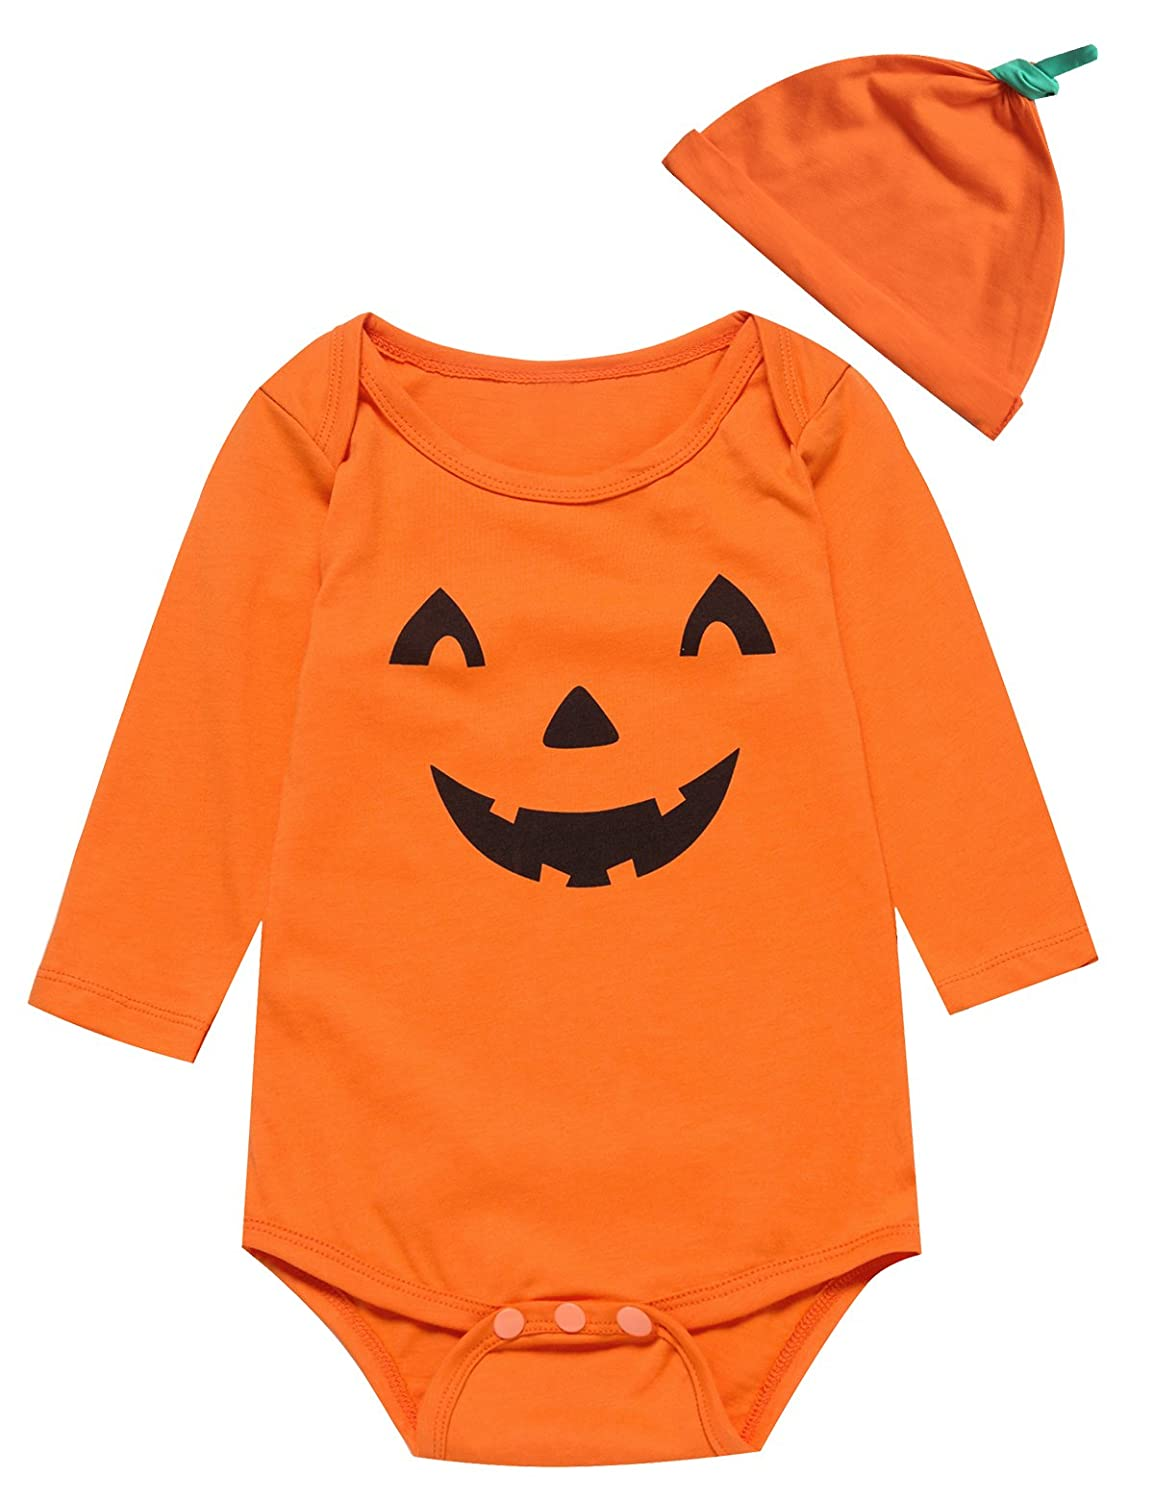 Little Fancy Baby Boys' Halloween Pumpkin Costume Bodysuit with Hat